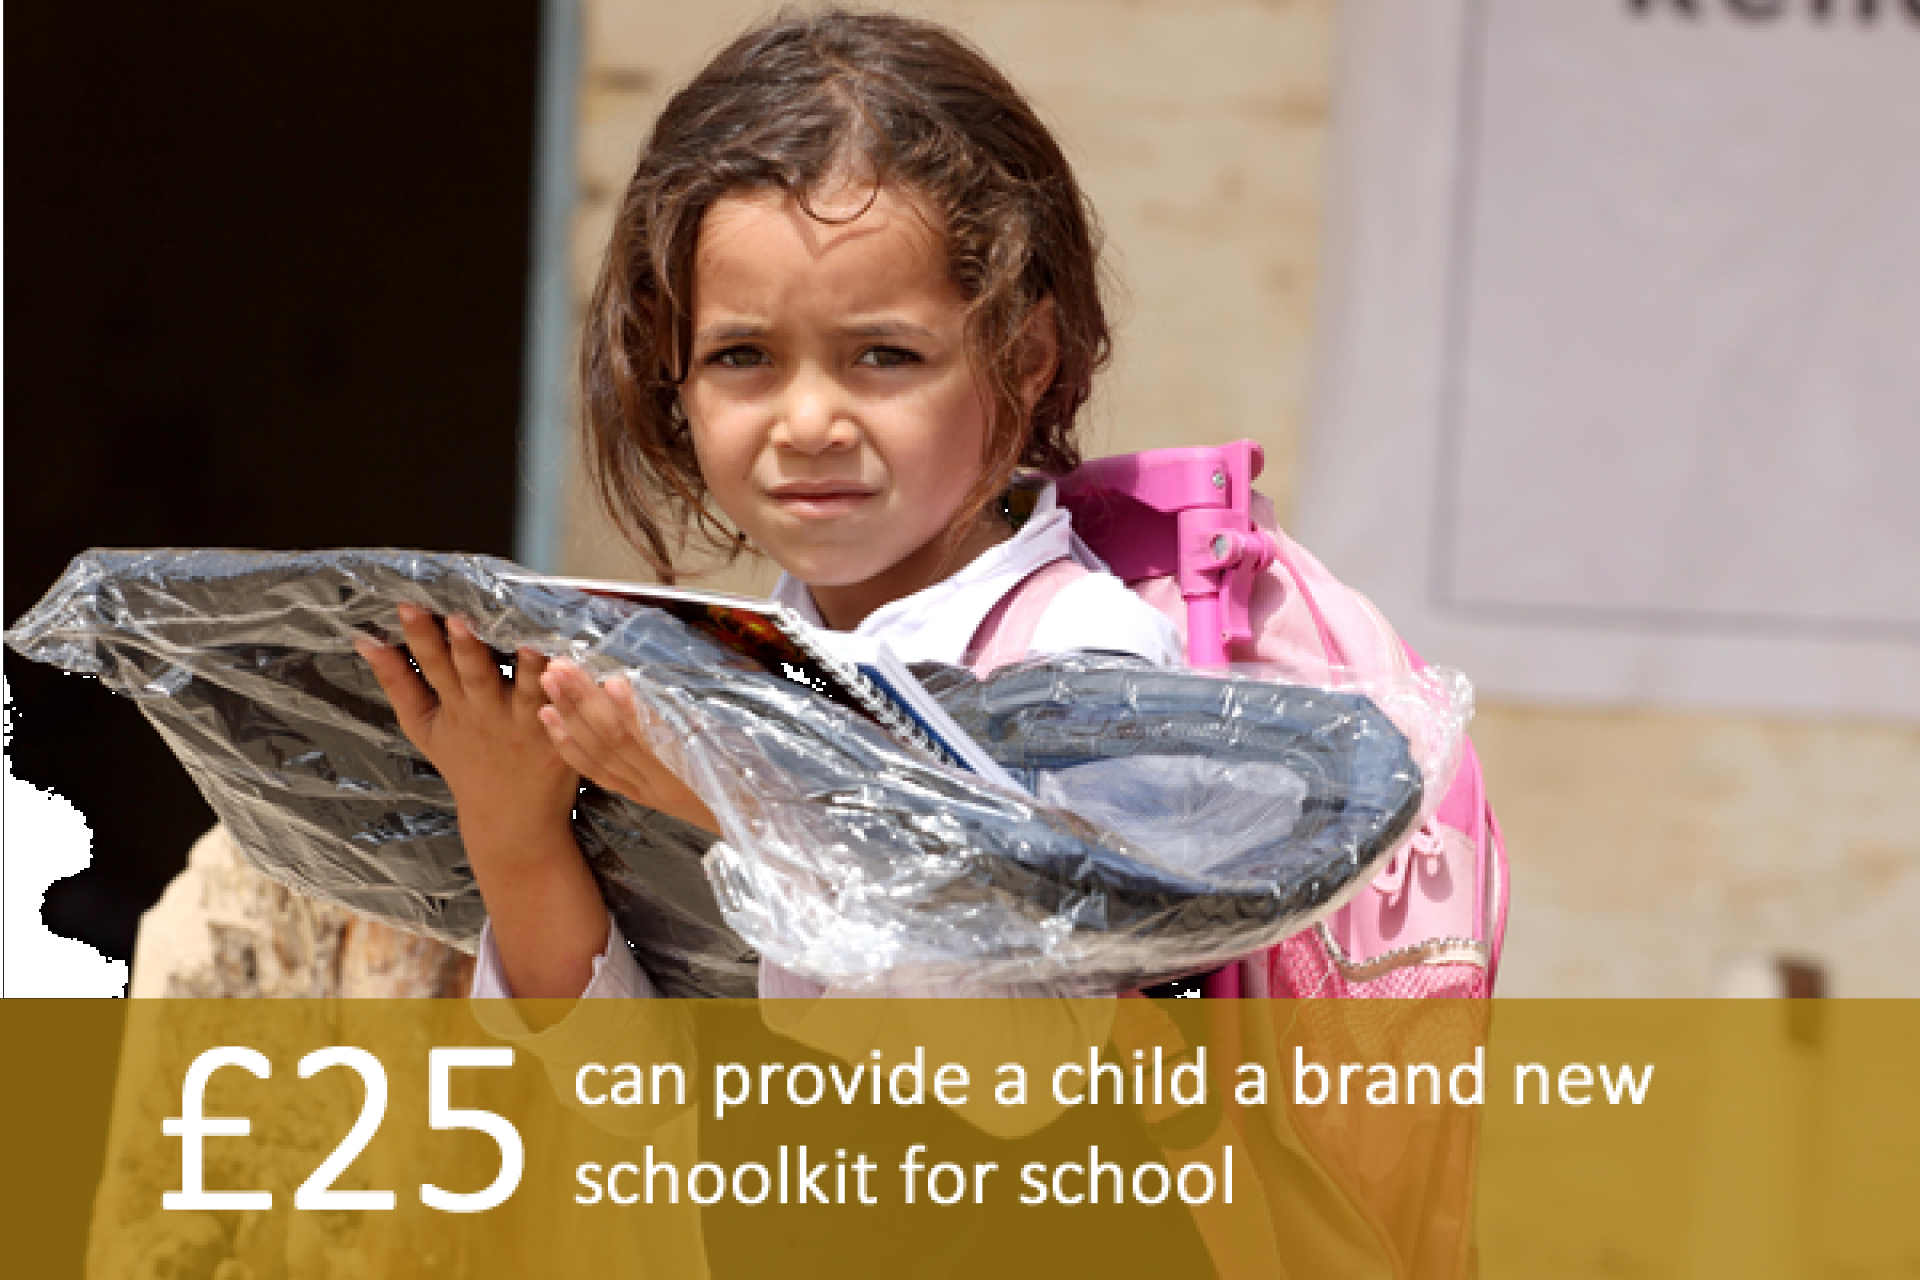 £25 can provide a child a brand new schoolkit for school